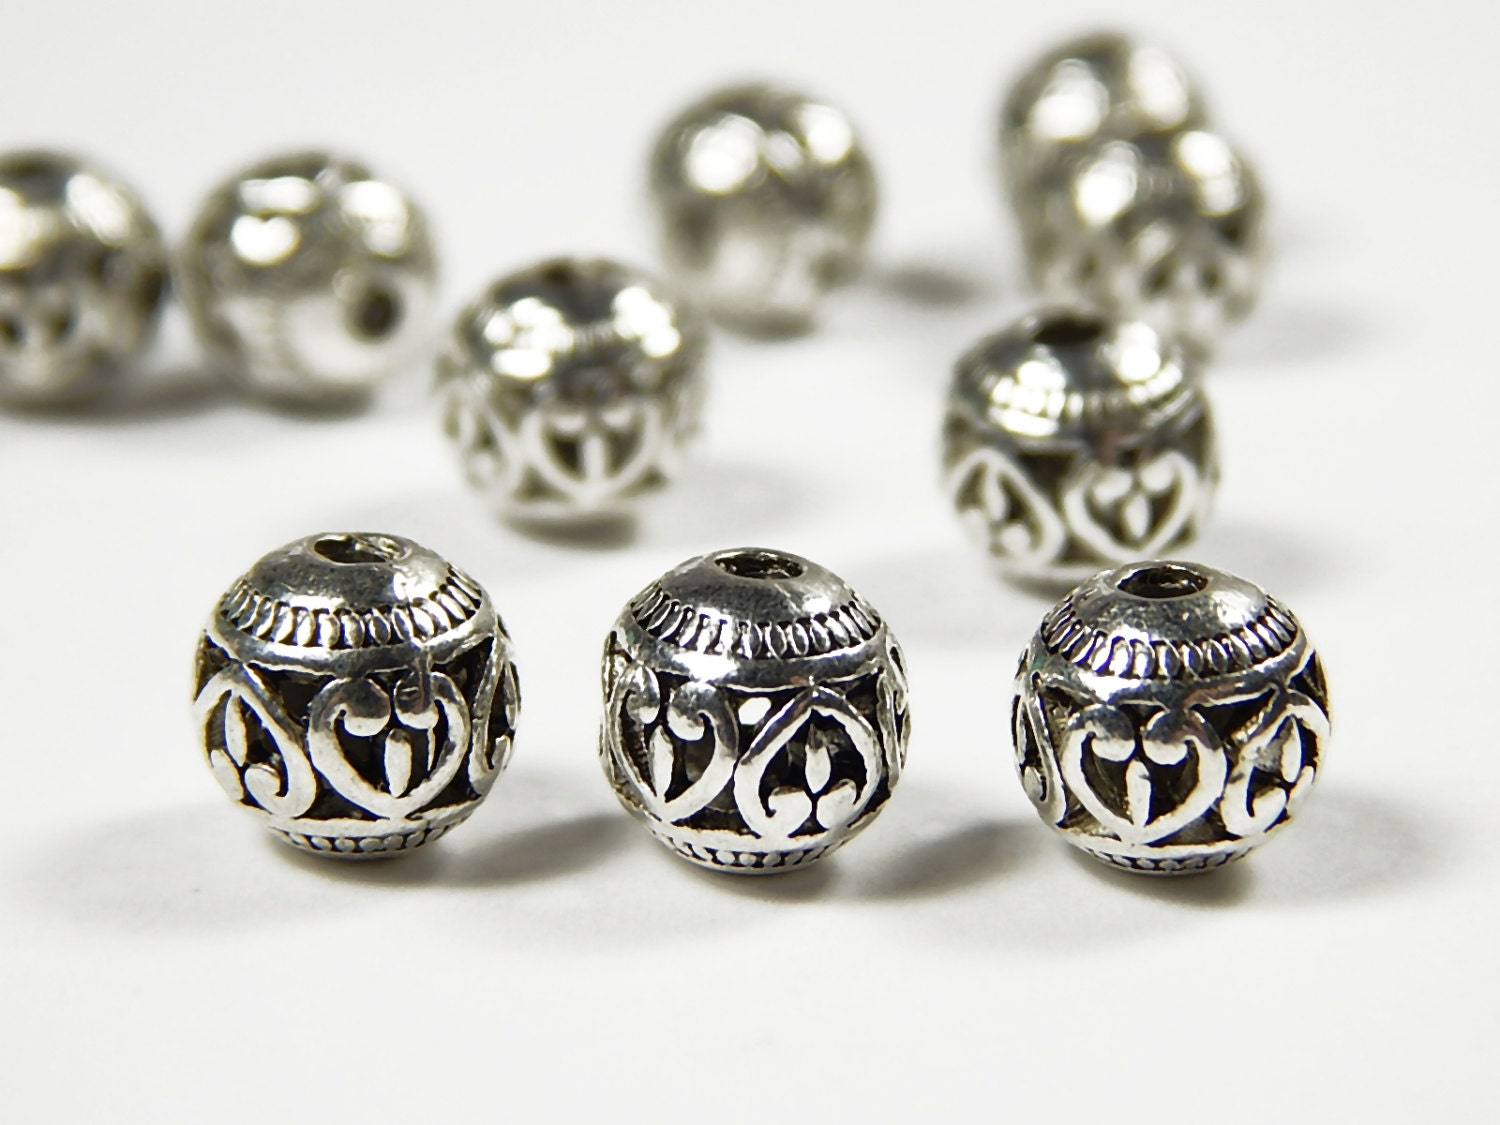 10 Pcs 8mm Metal Spacer Beads Tibetan Silver Spacer. Dull Gold Gold Jewellery. Jade Bead Gold Jewellery. Small Round Gold Jewellery. Pillala Gold Jewellery. Tample Gold Jewellery. Today Gold Jewellery. Low Price Gold Jewellery. Offers Flipkart Fashion Gold Jewellery